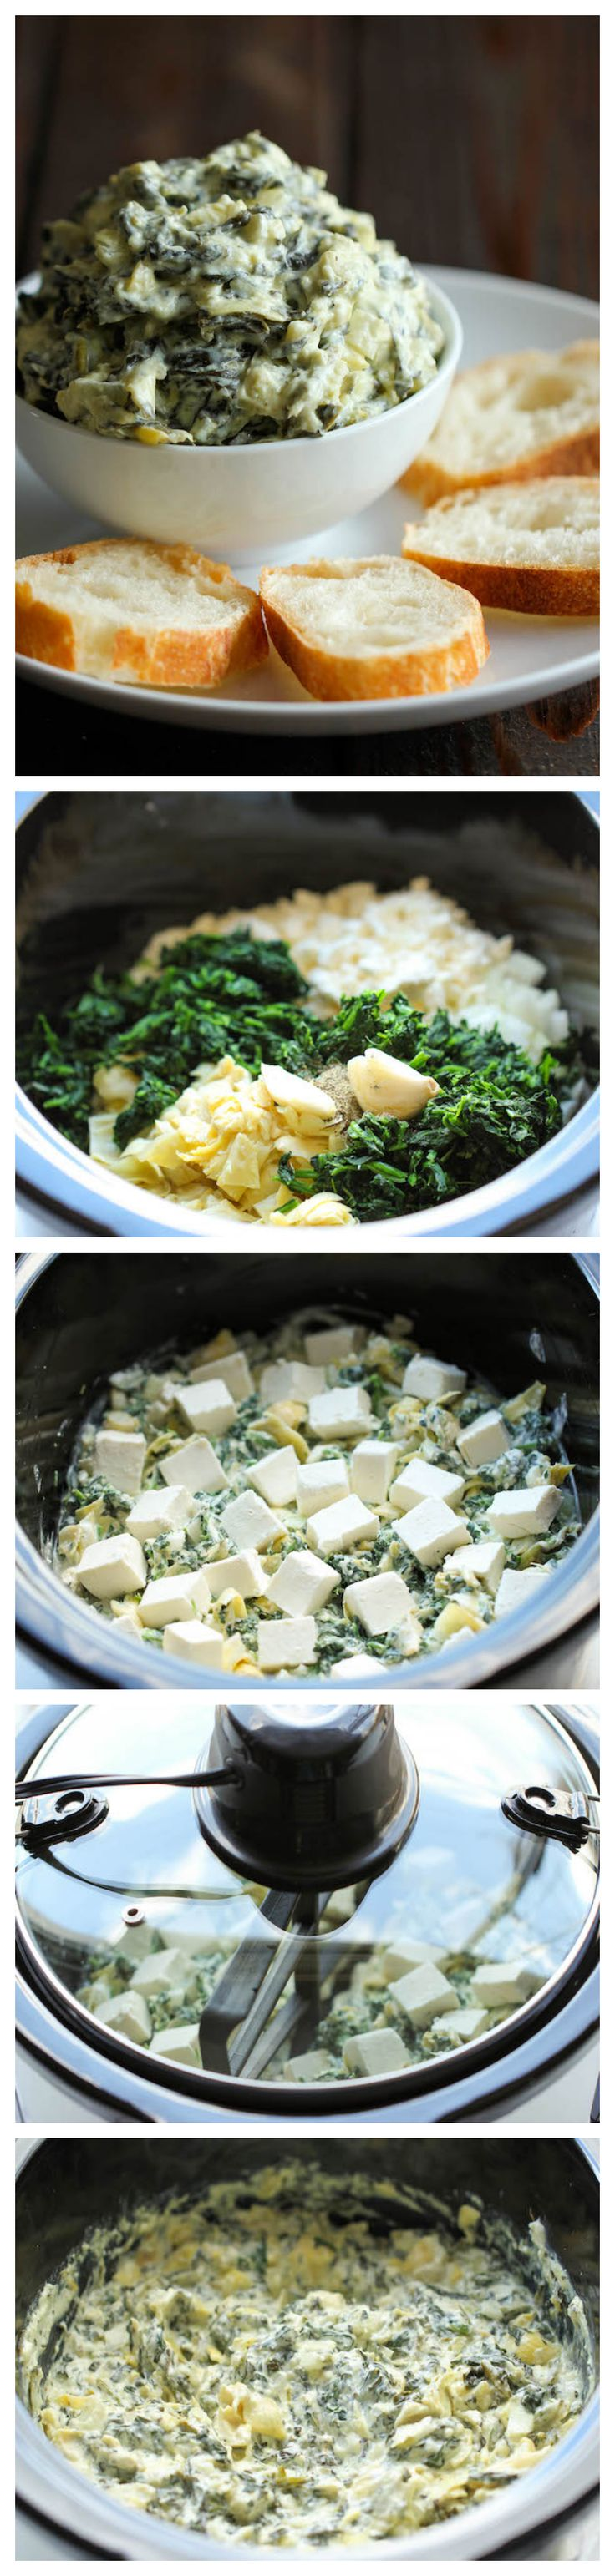 I have died and gone to heaven. Slow Cooker Spinach and Artichoke Dip. YUMM